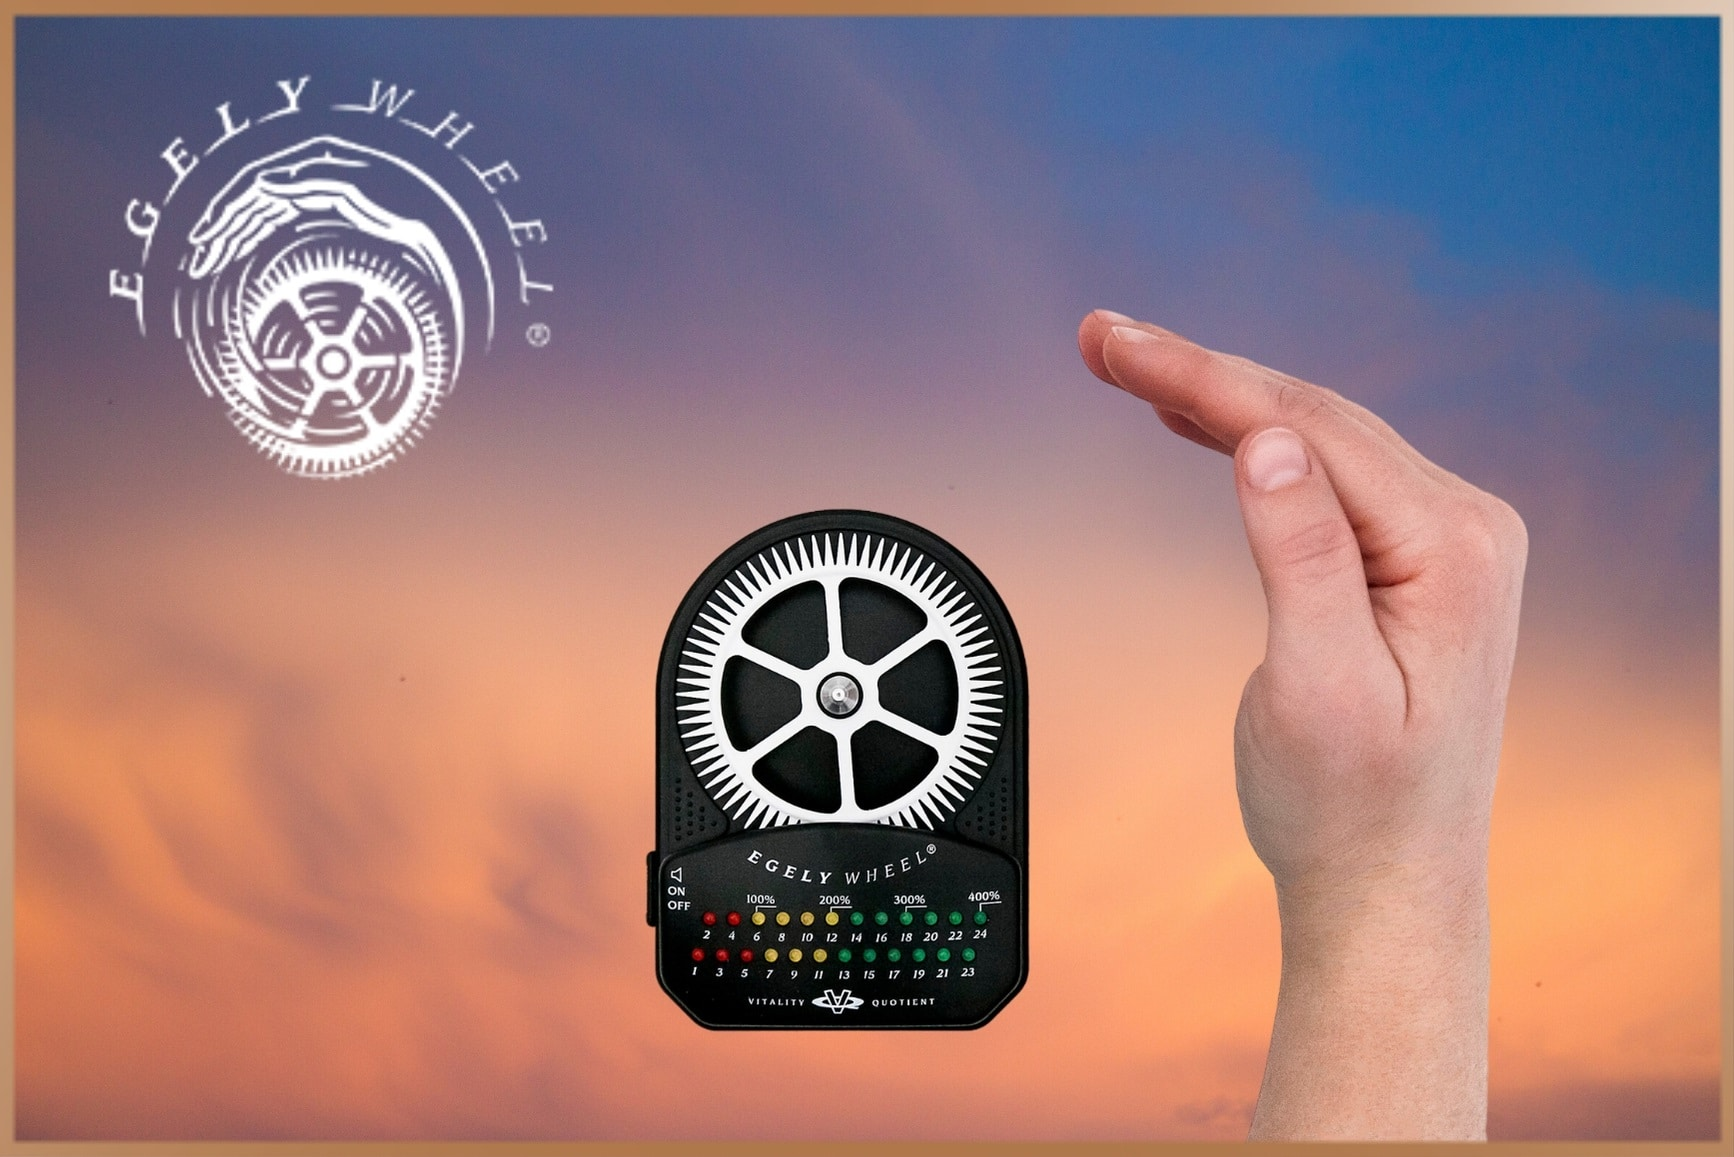 Egely Wheel Vitality Meter, a device for measuring energy level